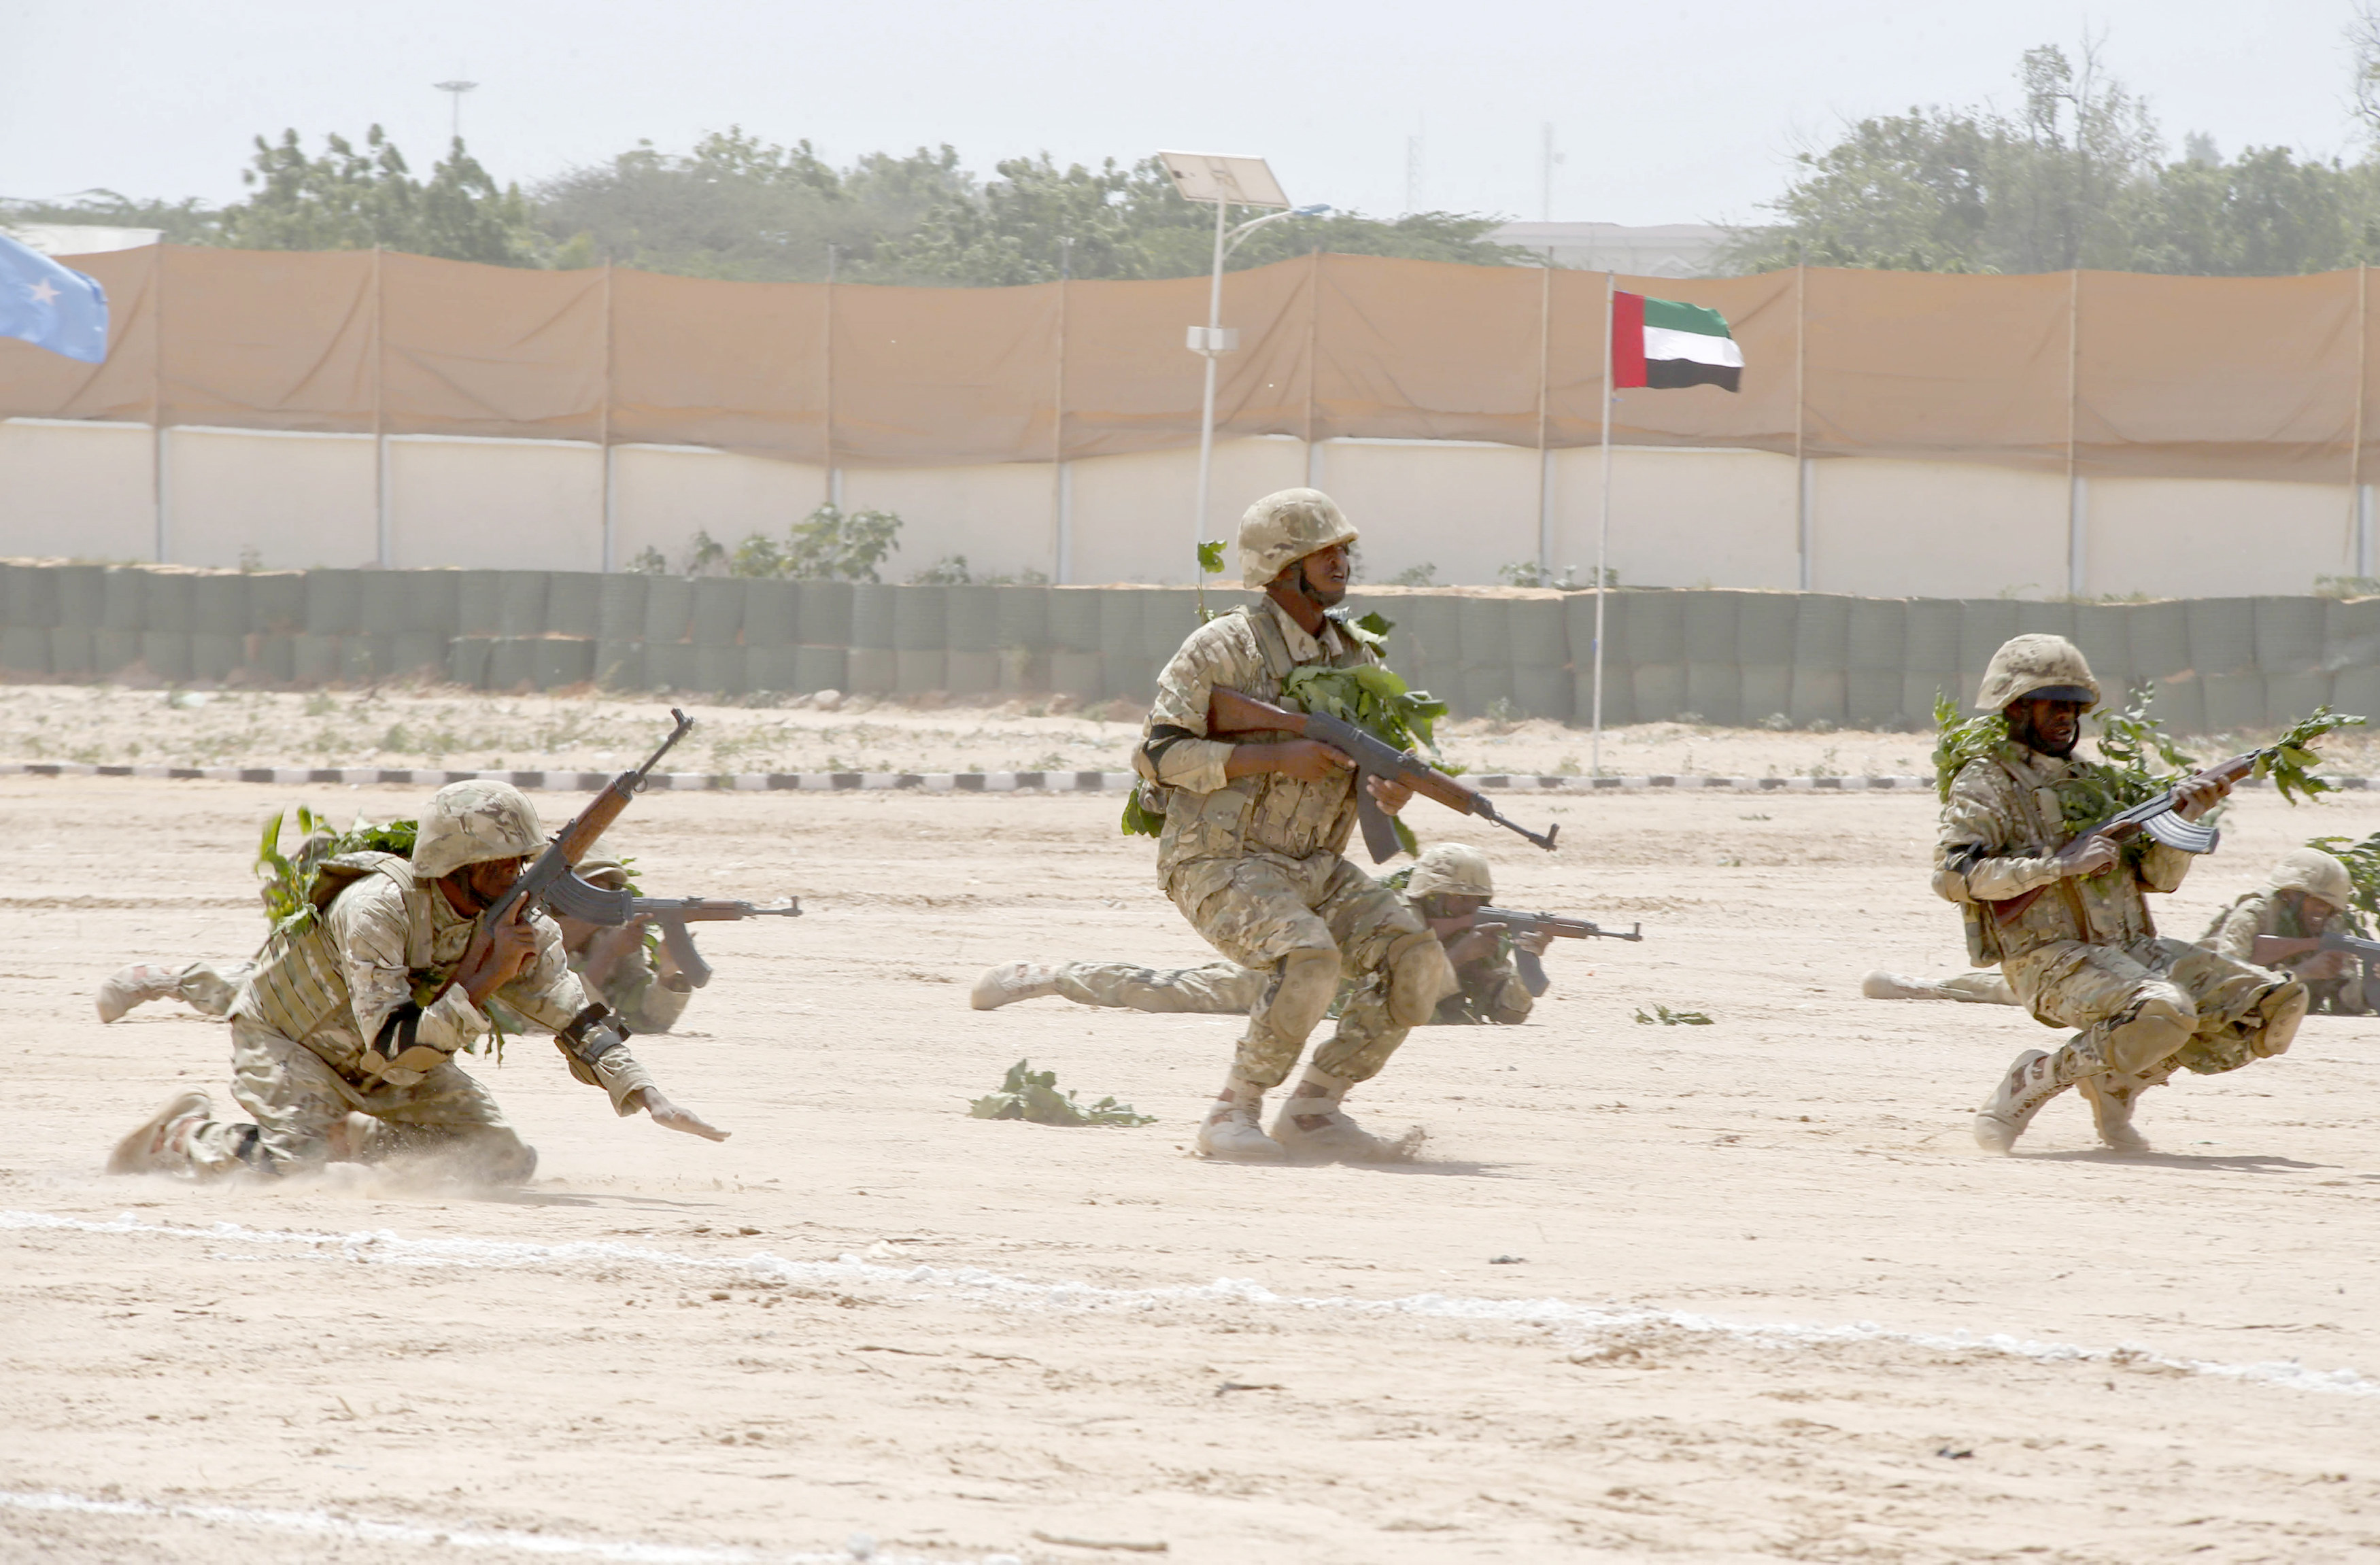 A 2016 file picture shows members of the Somali military performing a defensive drill at the UAE military training camp in Mogadishu. (Reuters)